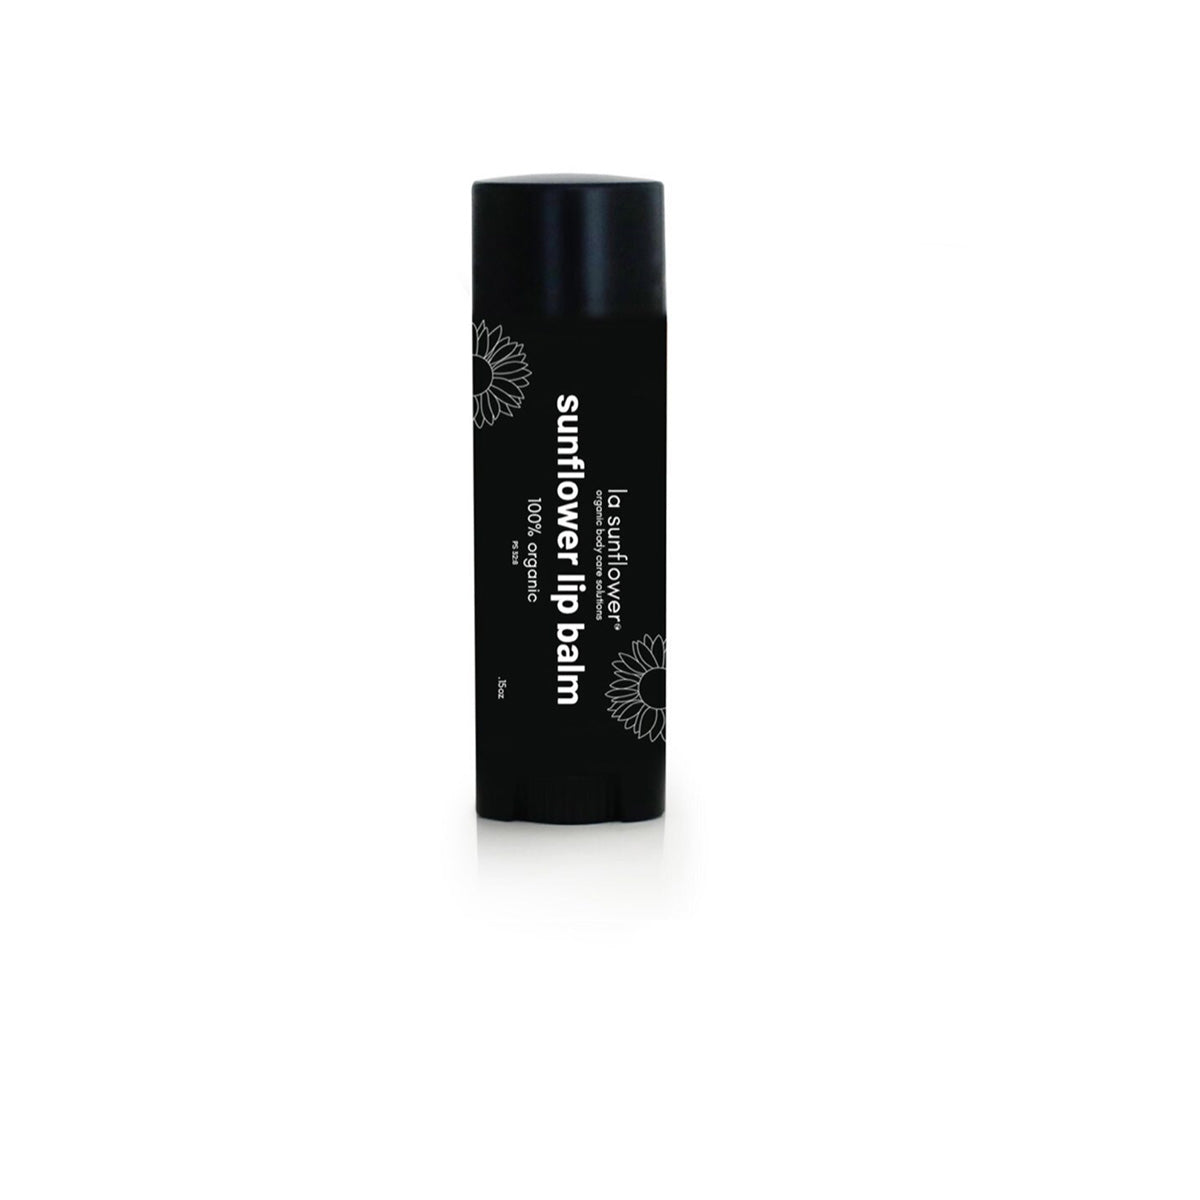 La Sunflower Lip Balm